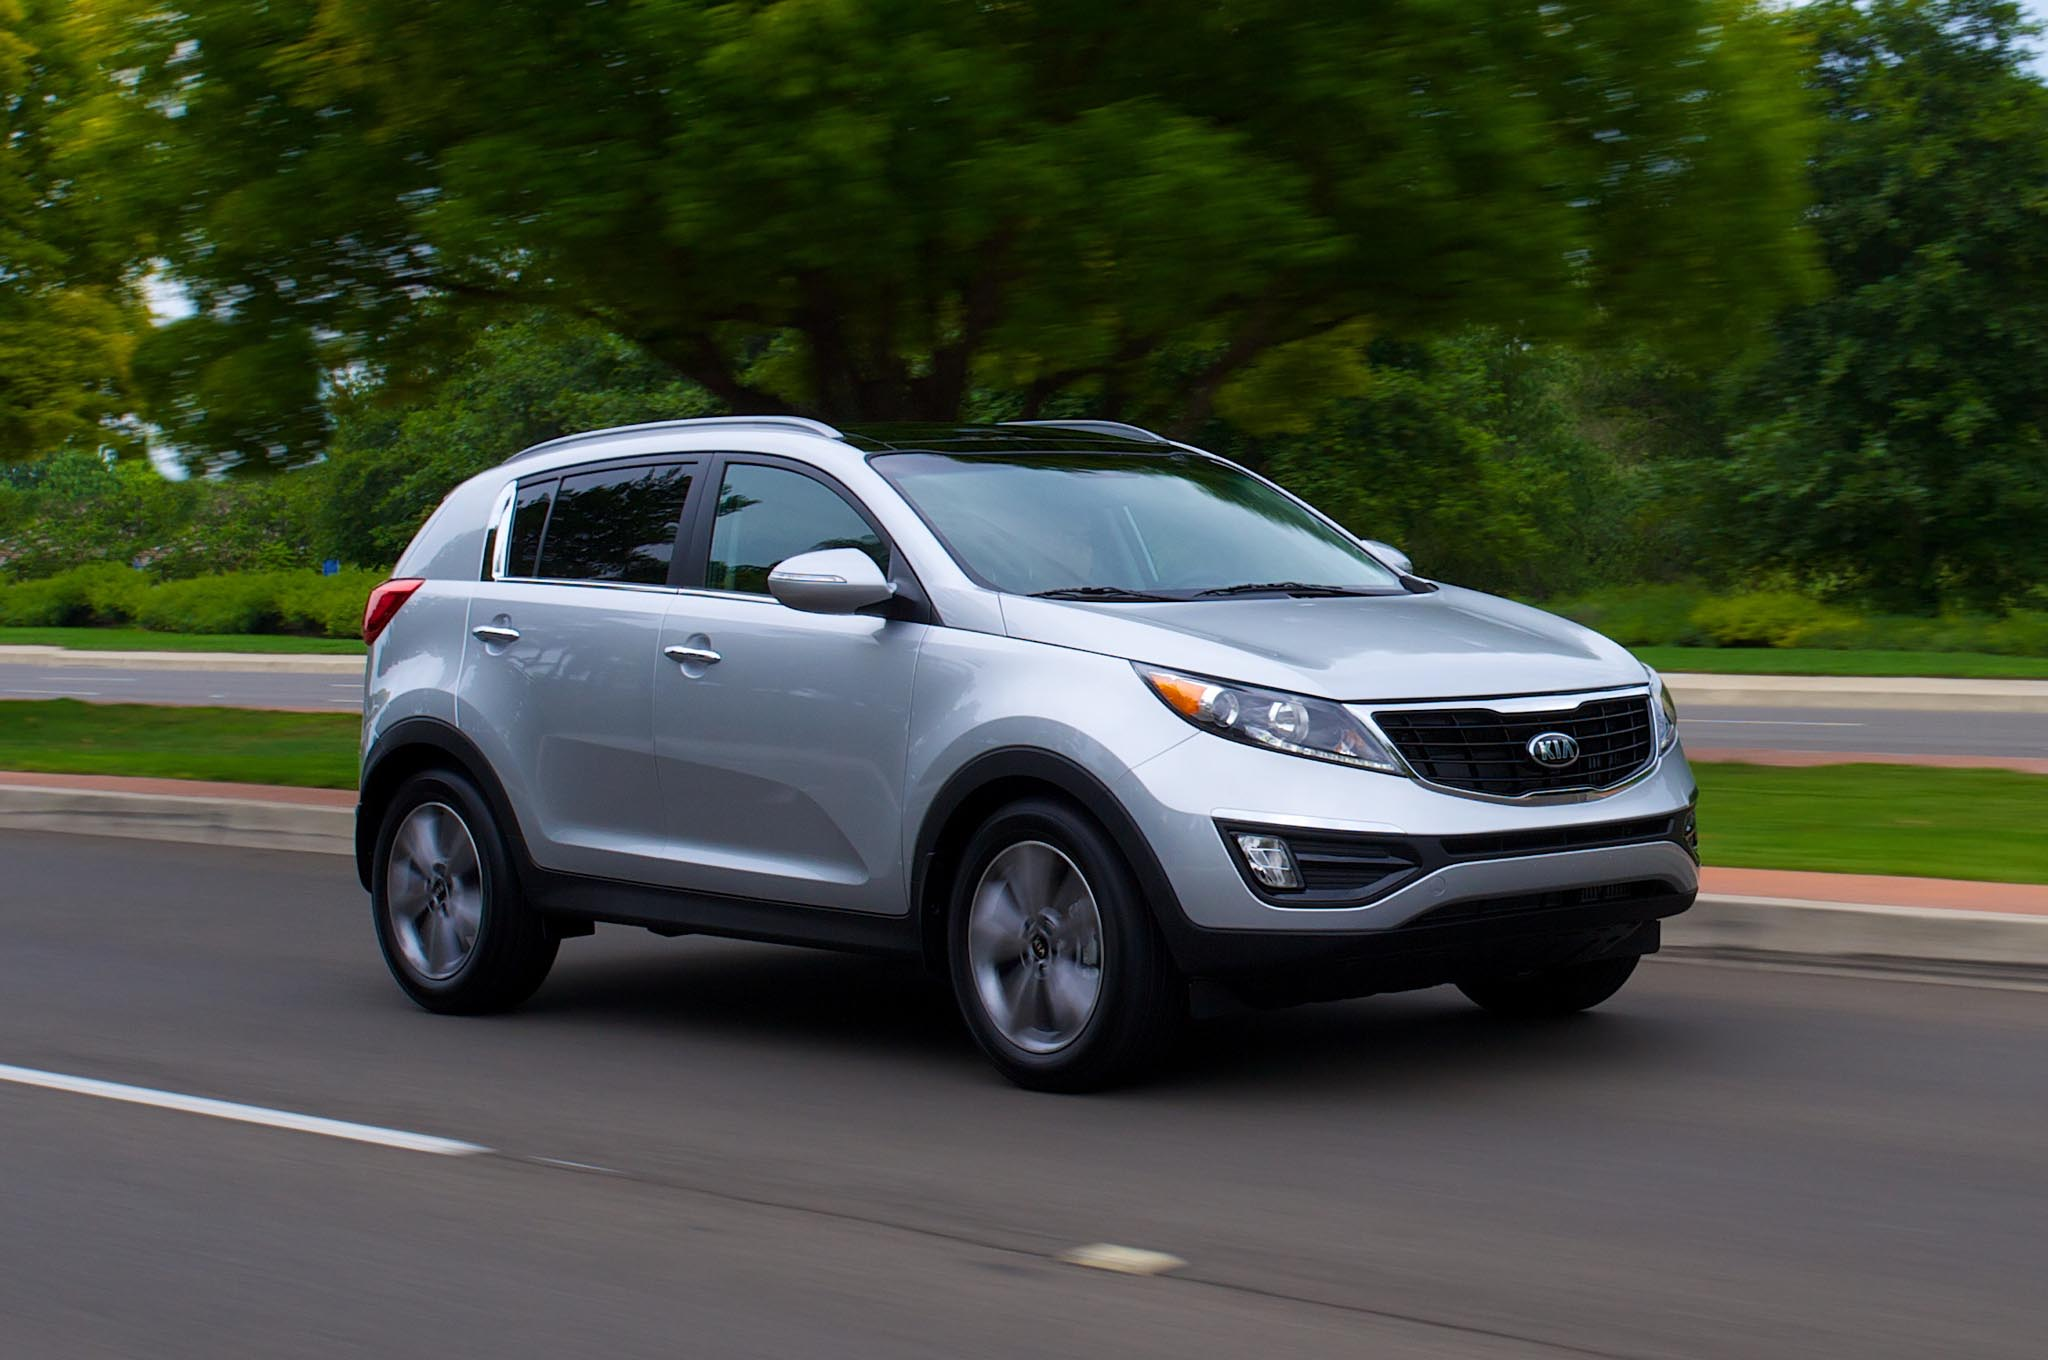 2014 kia sportage gets new engine revised styling. Black Bedroom Furniture Sets. Home Design Ideas